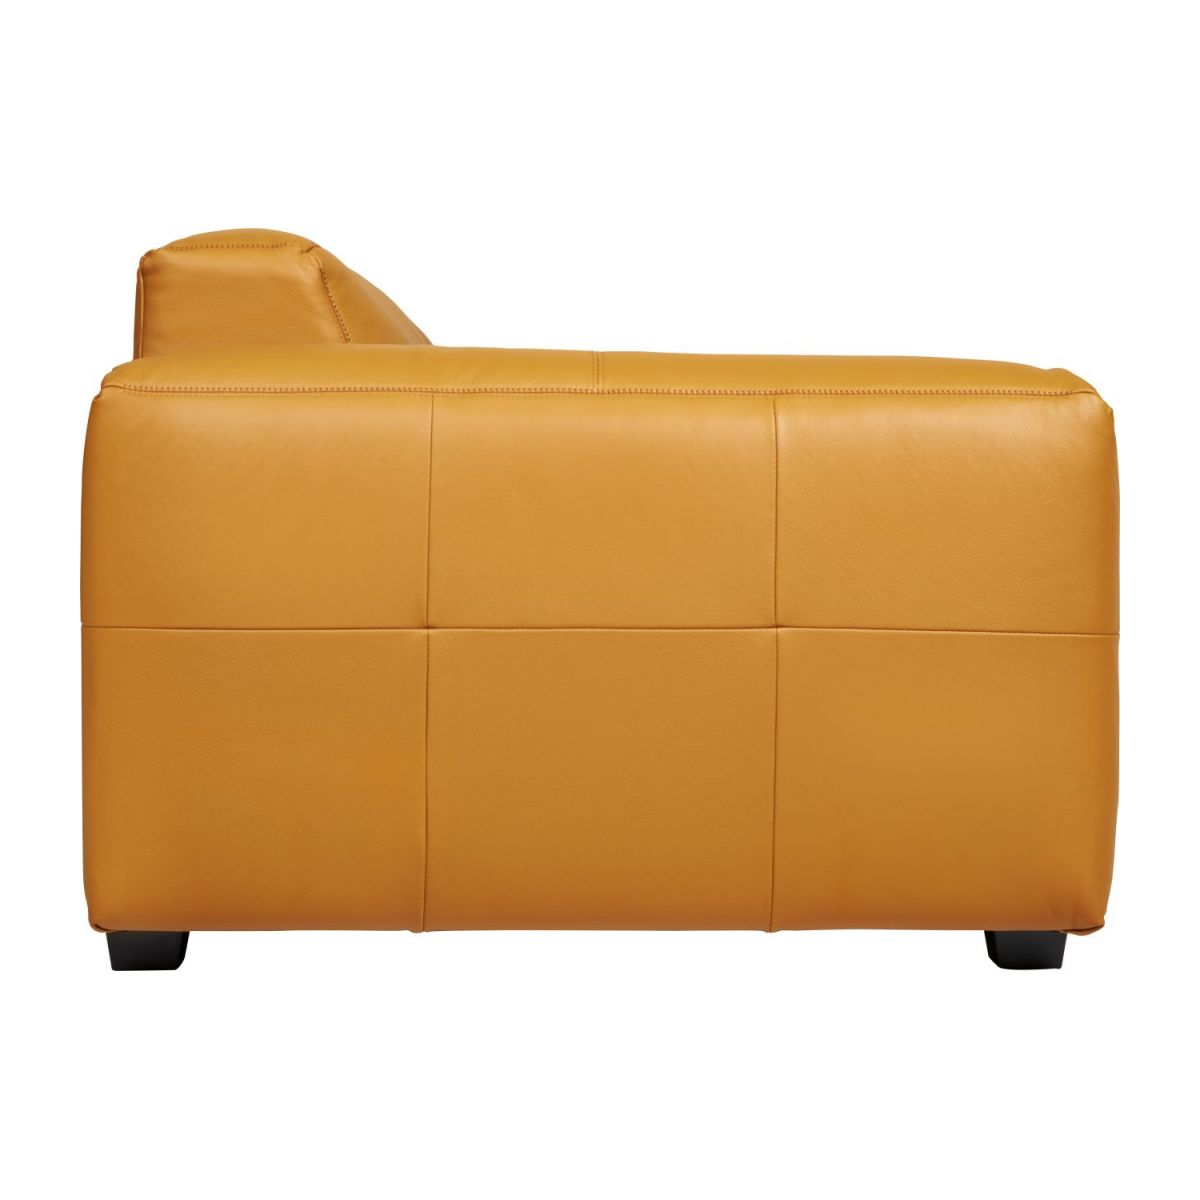 3 seater sofa in Savoy semi-aniline leather, cognac n°5